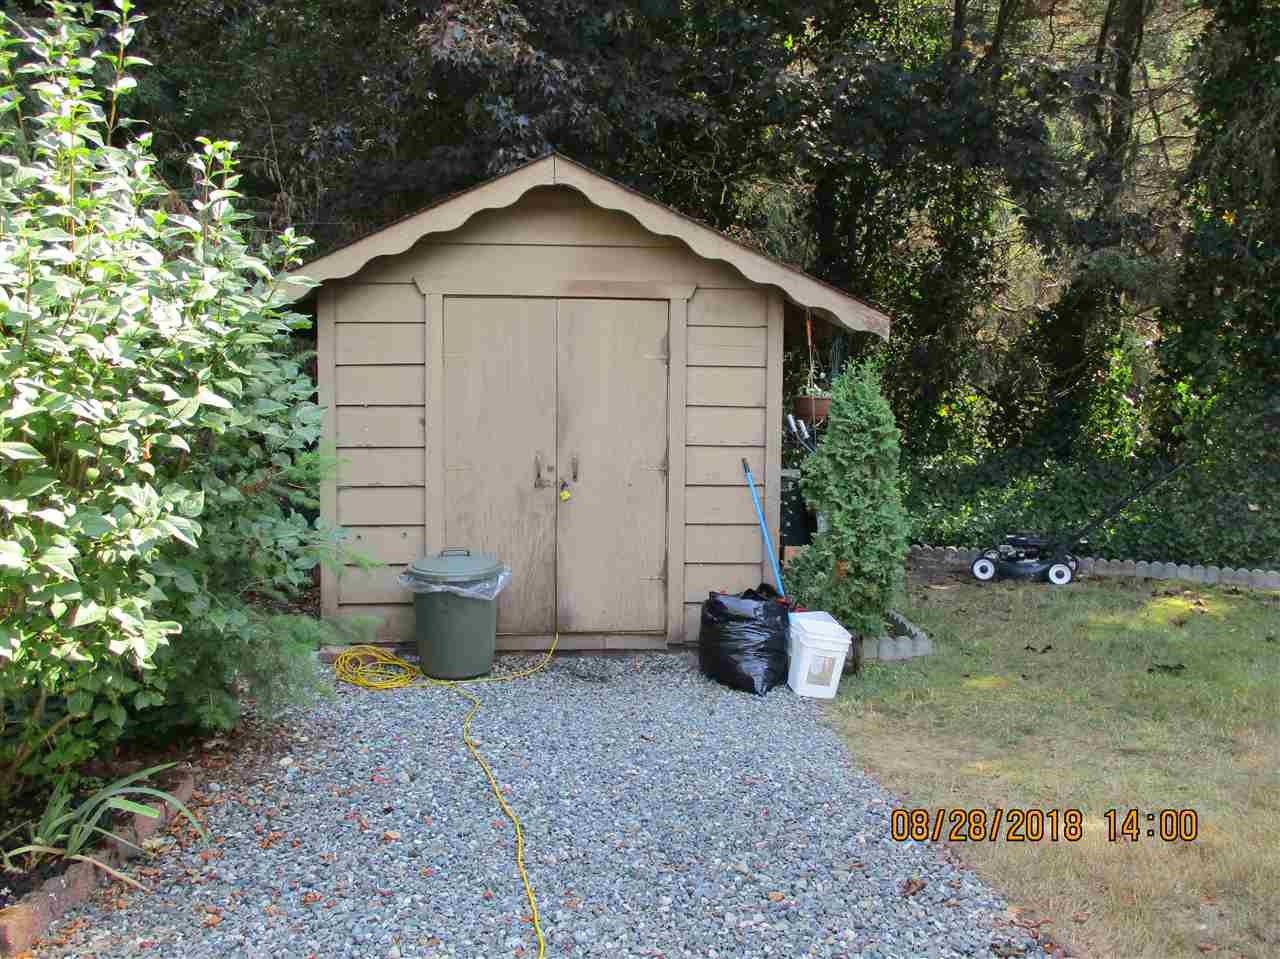 """Photo 18: Photos: 57 2305 200 Street in Langley: Brookswood Langley Manufactured Home for sale in """"CEDAR LANE"""" : MLS®# R2357125"""